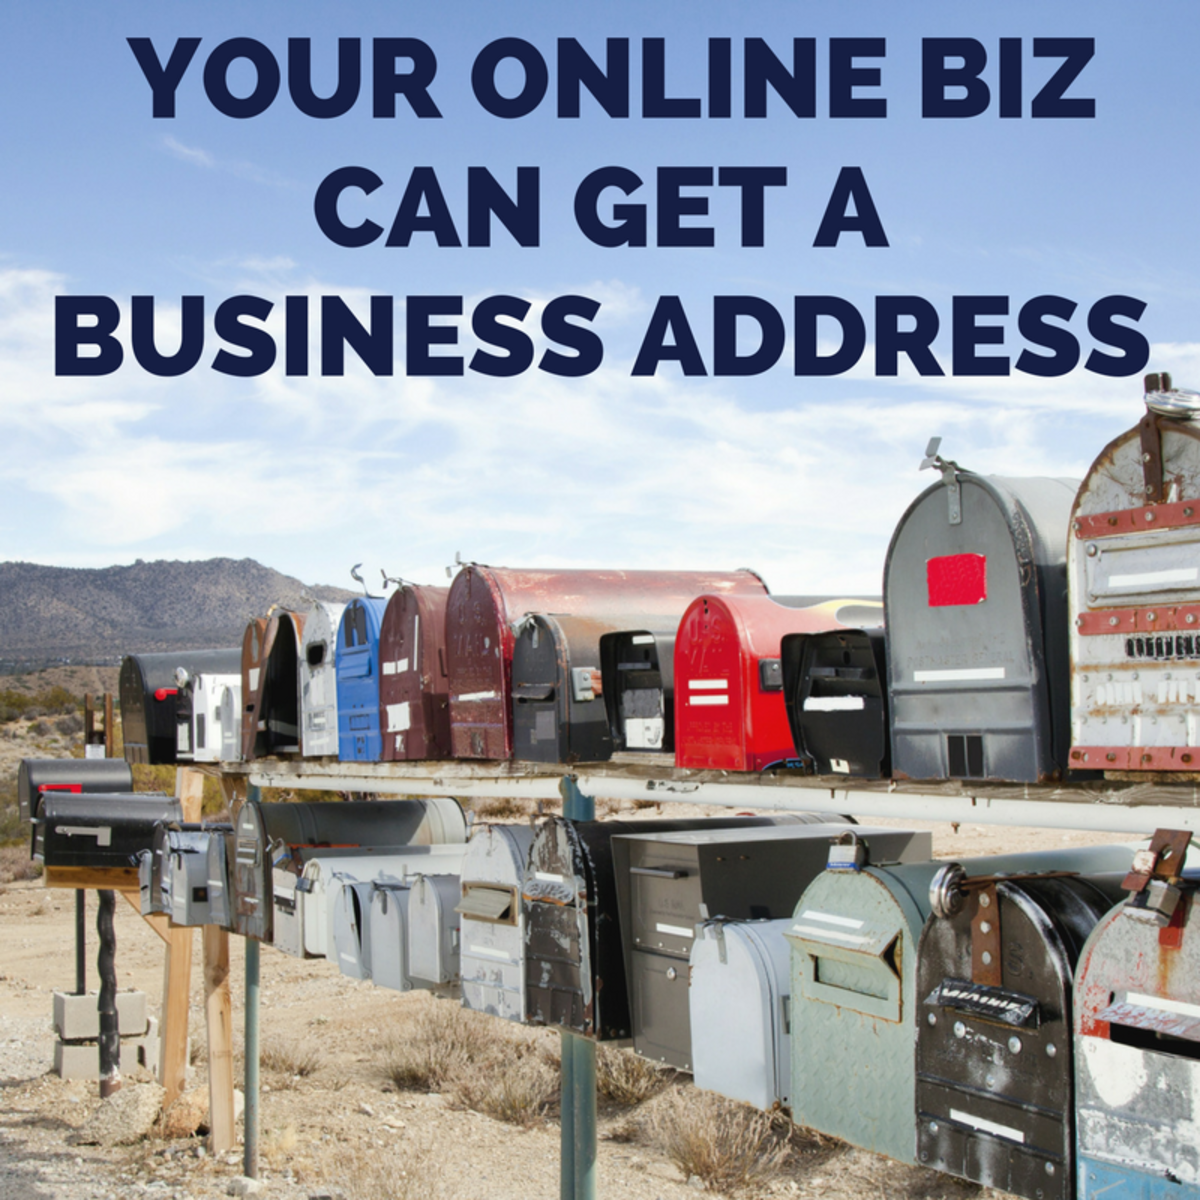 This guide will provide information on your different options when it comes to getting a business address for your small business.